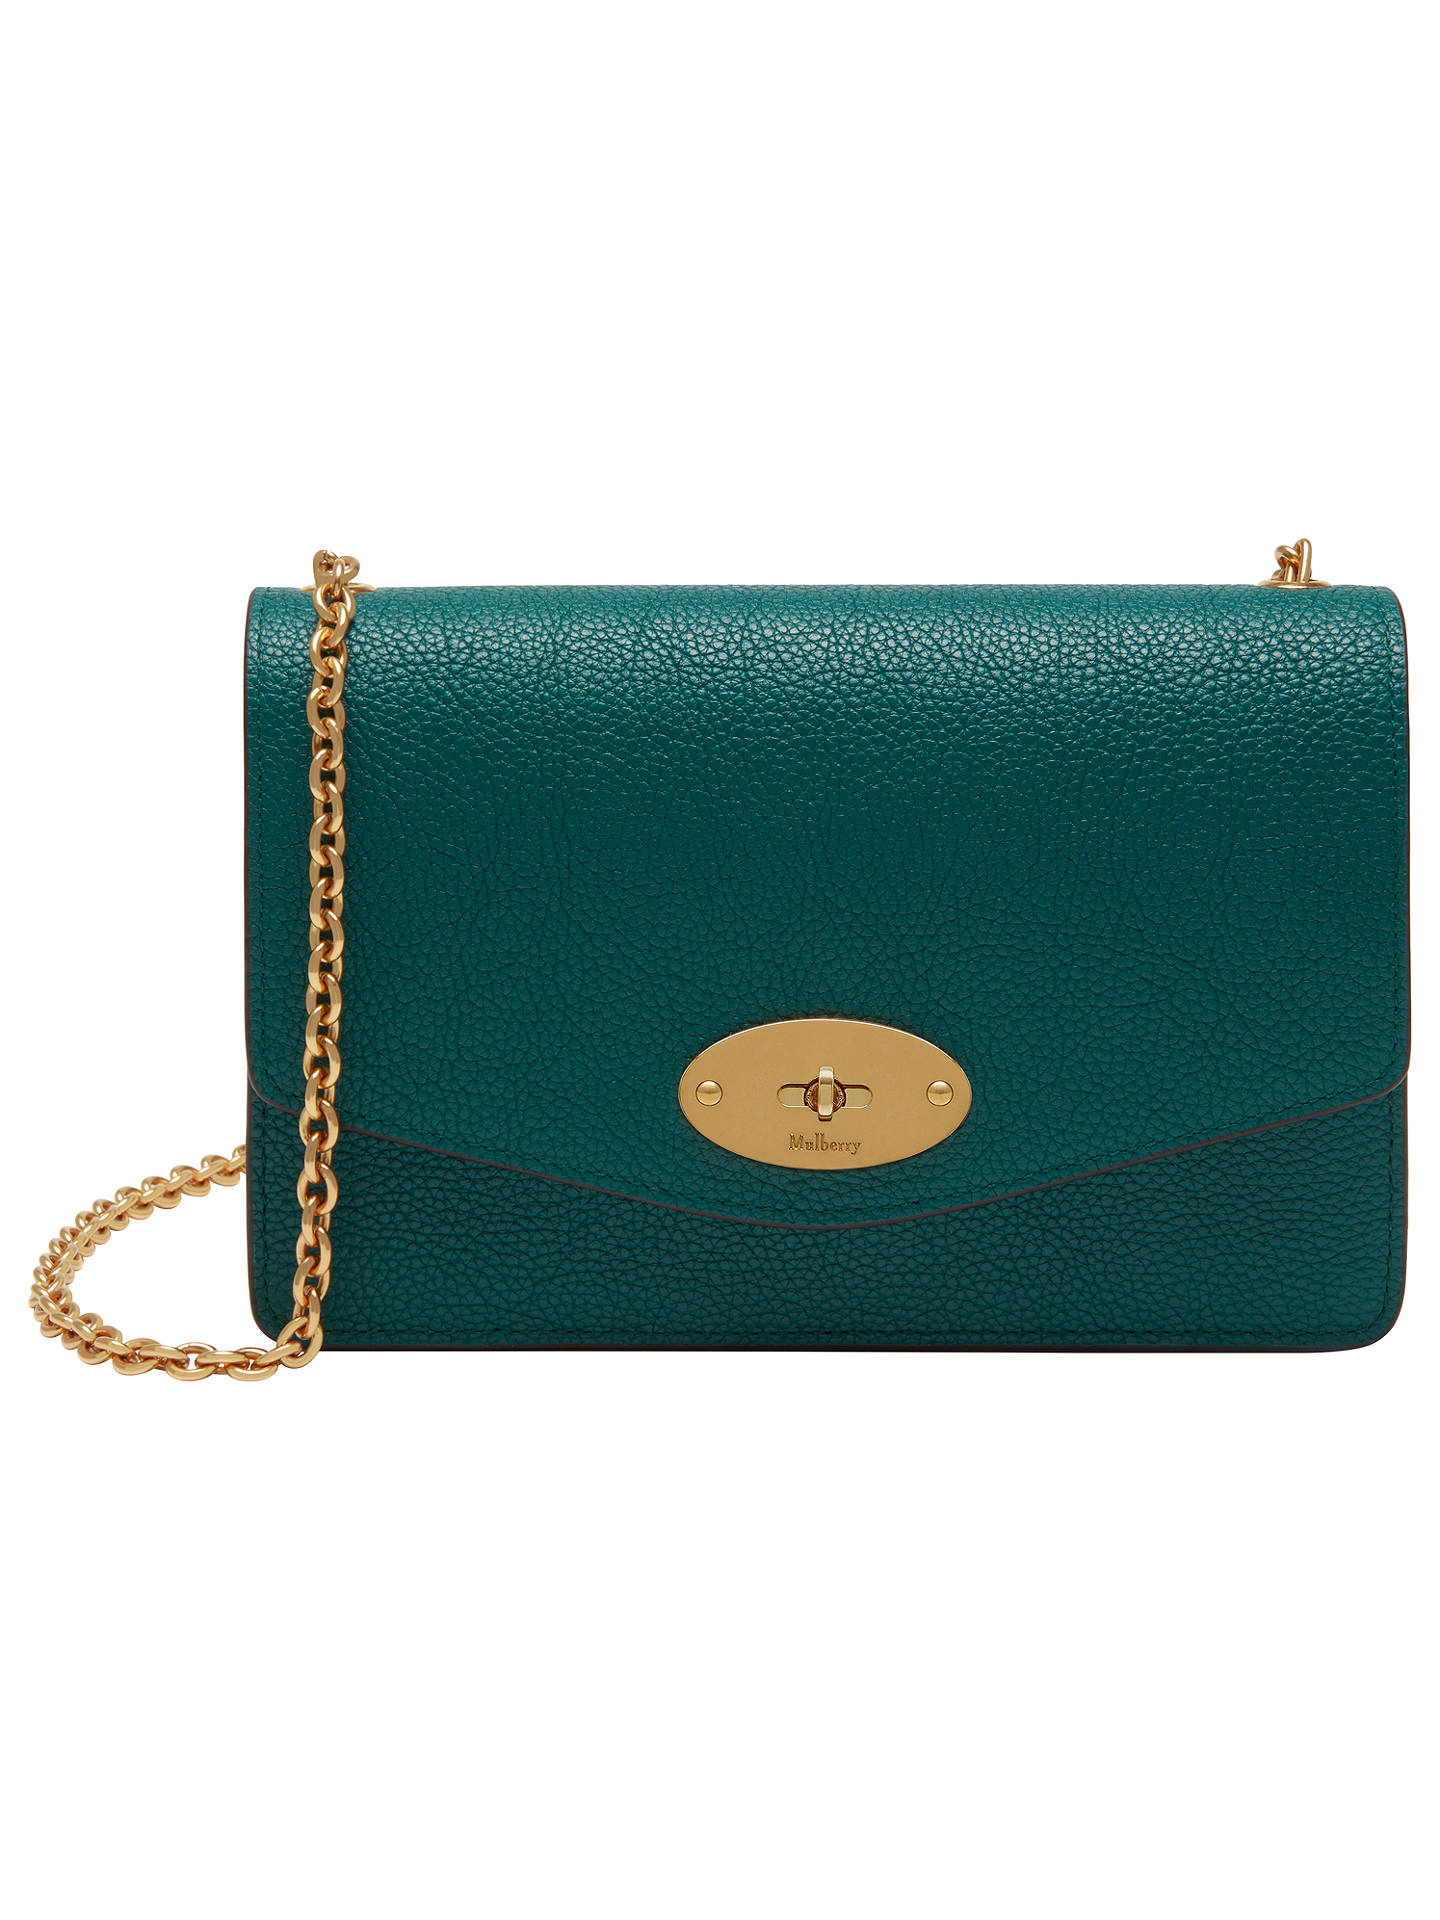 f675f34f82 ... uk buymulberry darley small classic grain cross body bag ocean green  online at johnlewis b93ee 1f49d clearance promotion mulberry ...